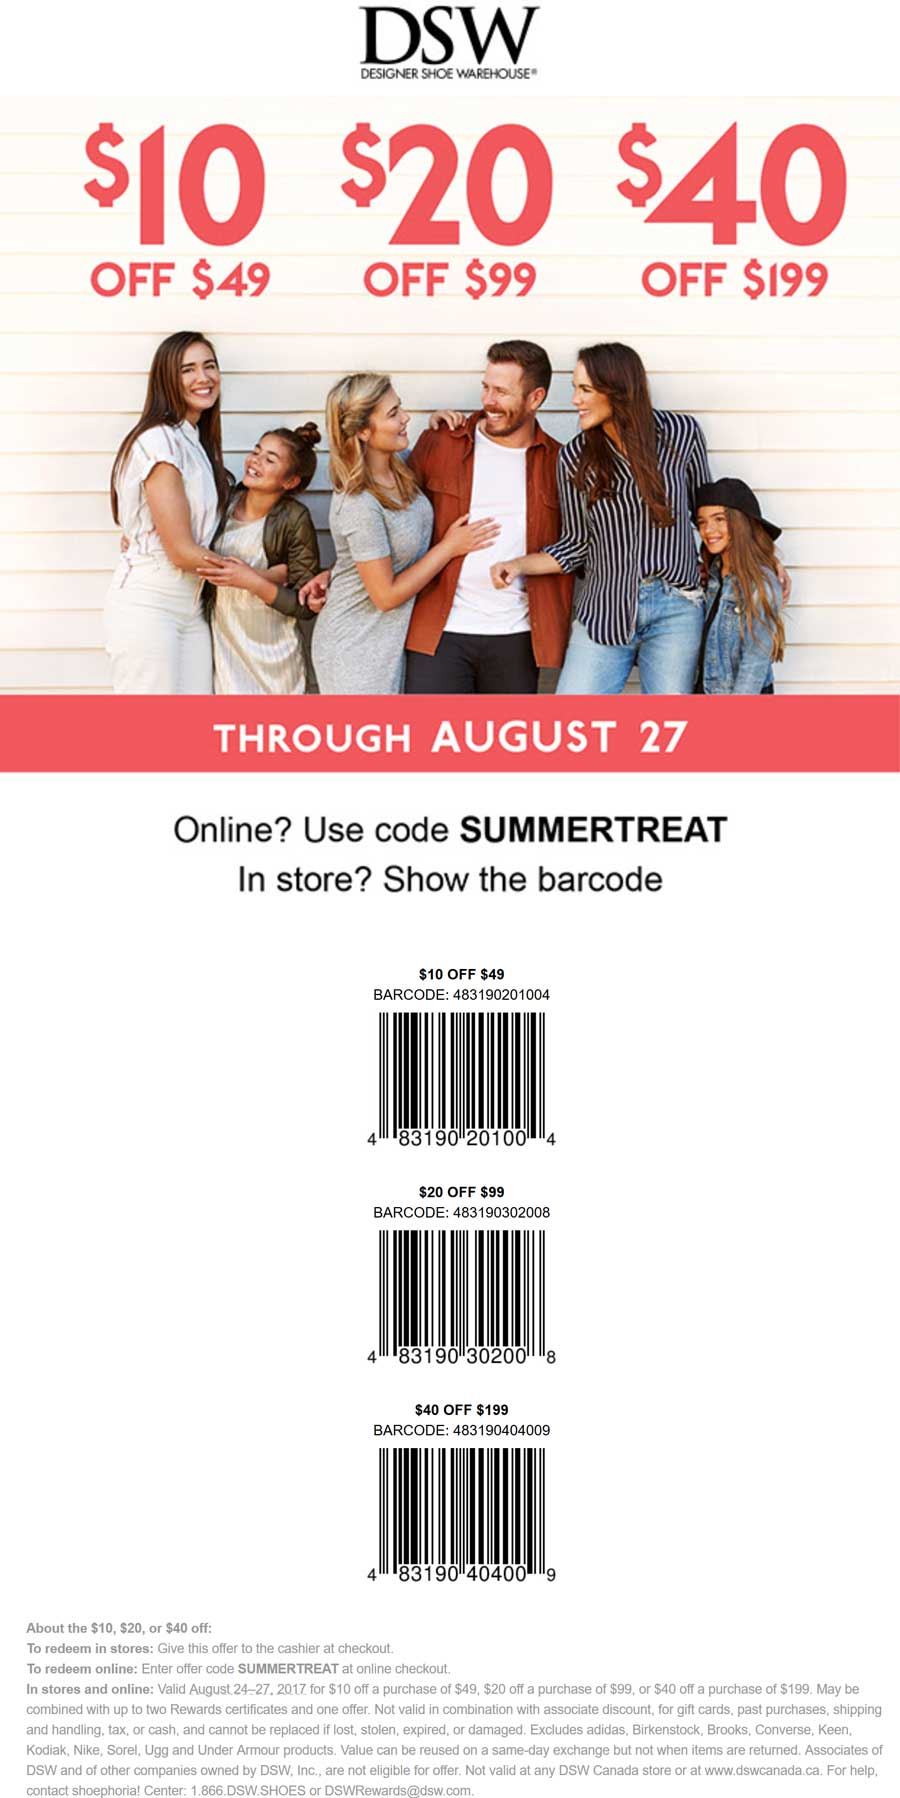 DSW.com Promo Coupon $10 off $49 & more at DSW Shoe Warehouse, or online via promo code SUMMERTREAT